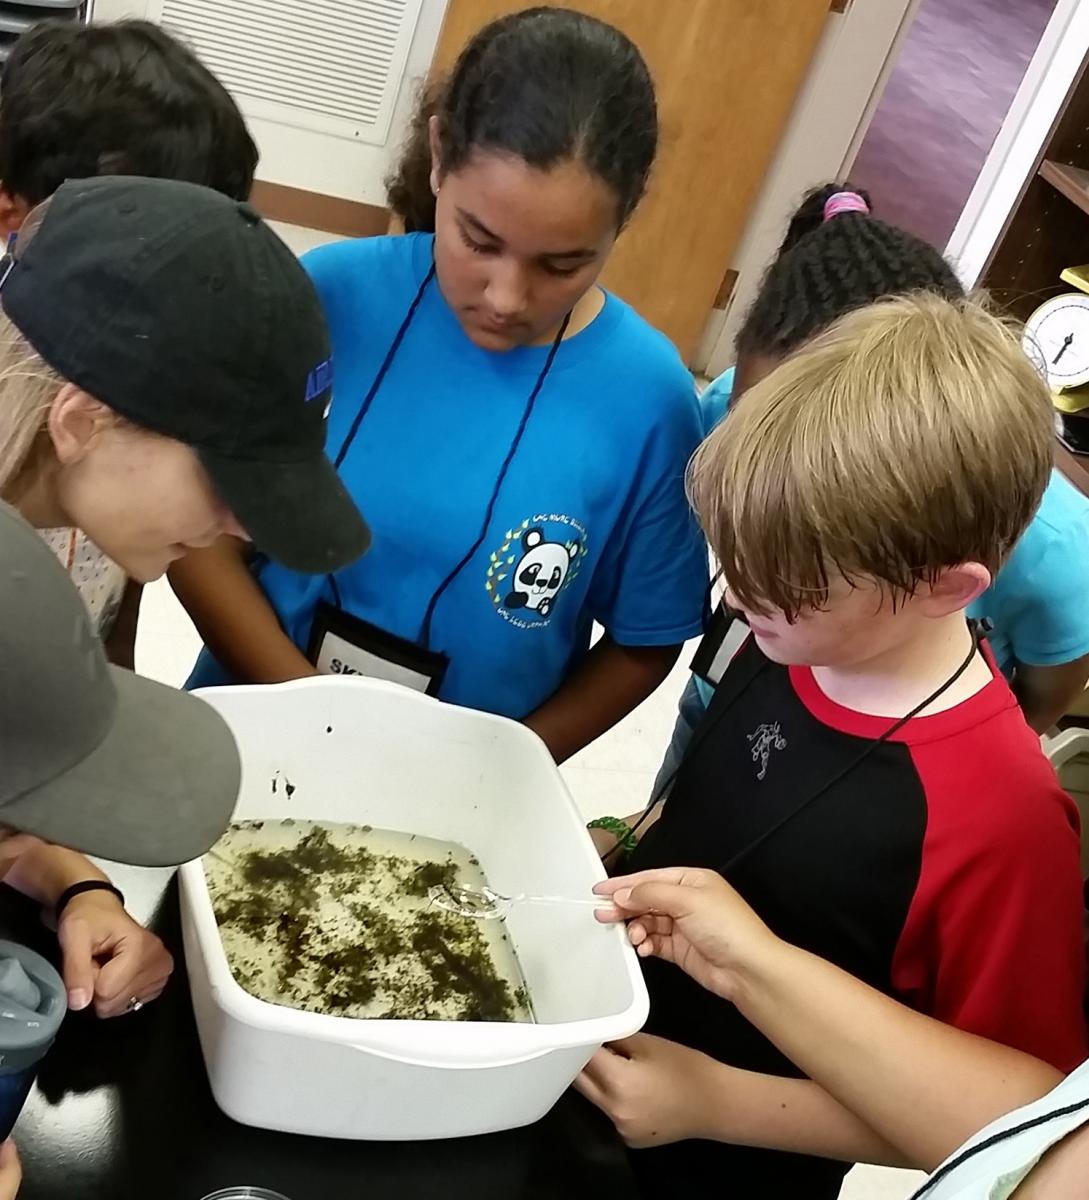 Young participants in a conservation camp at Mississippi State University in 2016 learn about water quality as they examine captured aquatic macroinvertebrates. (Submitted photo)